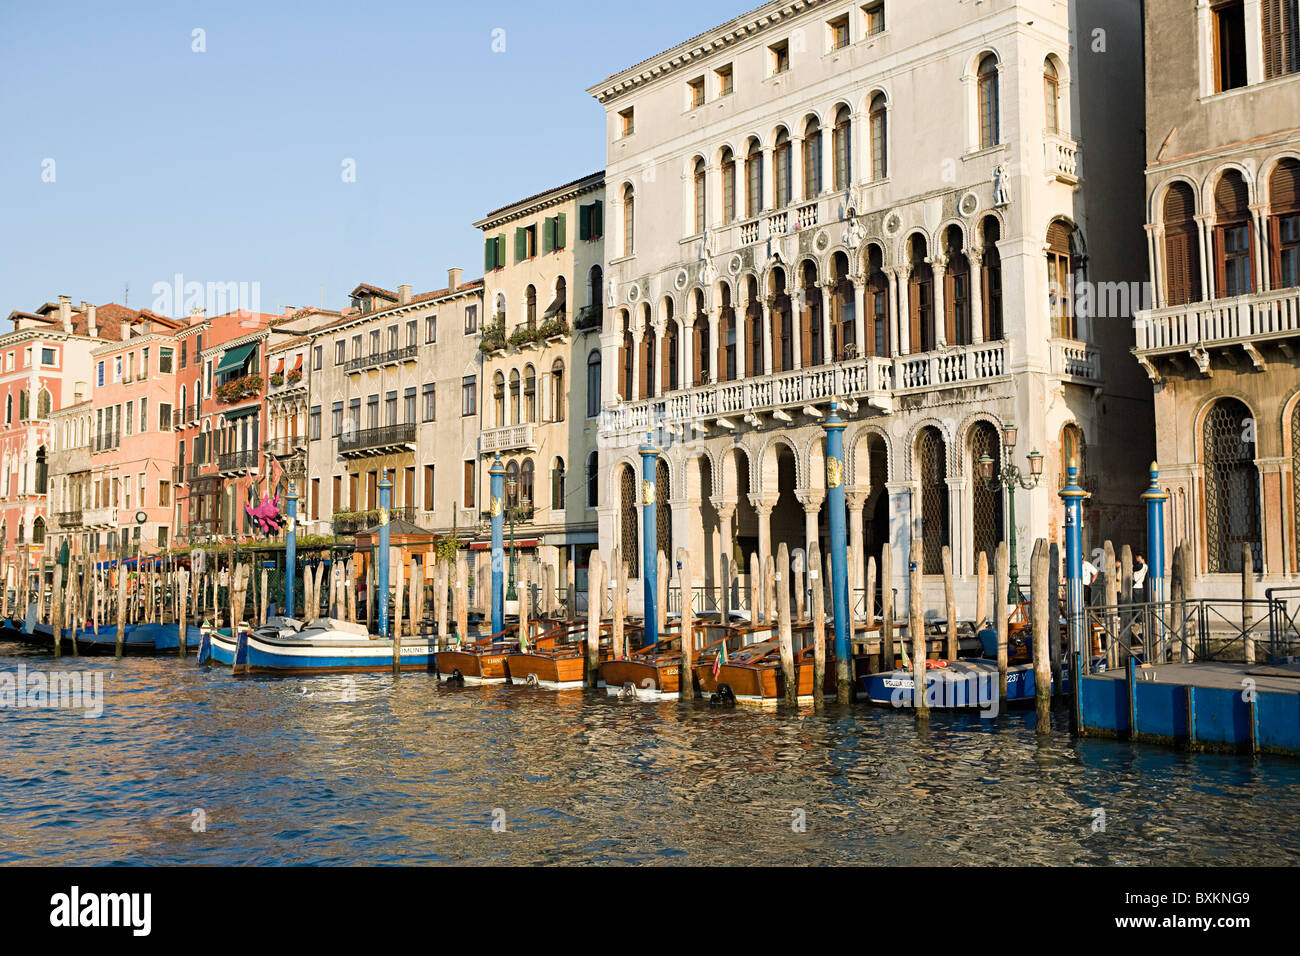 Grand canal, Venise, Italie Photo Stock